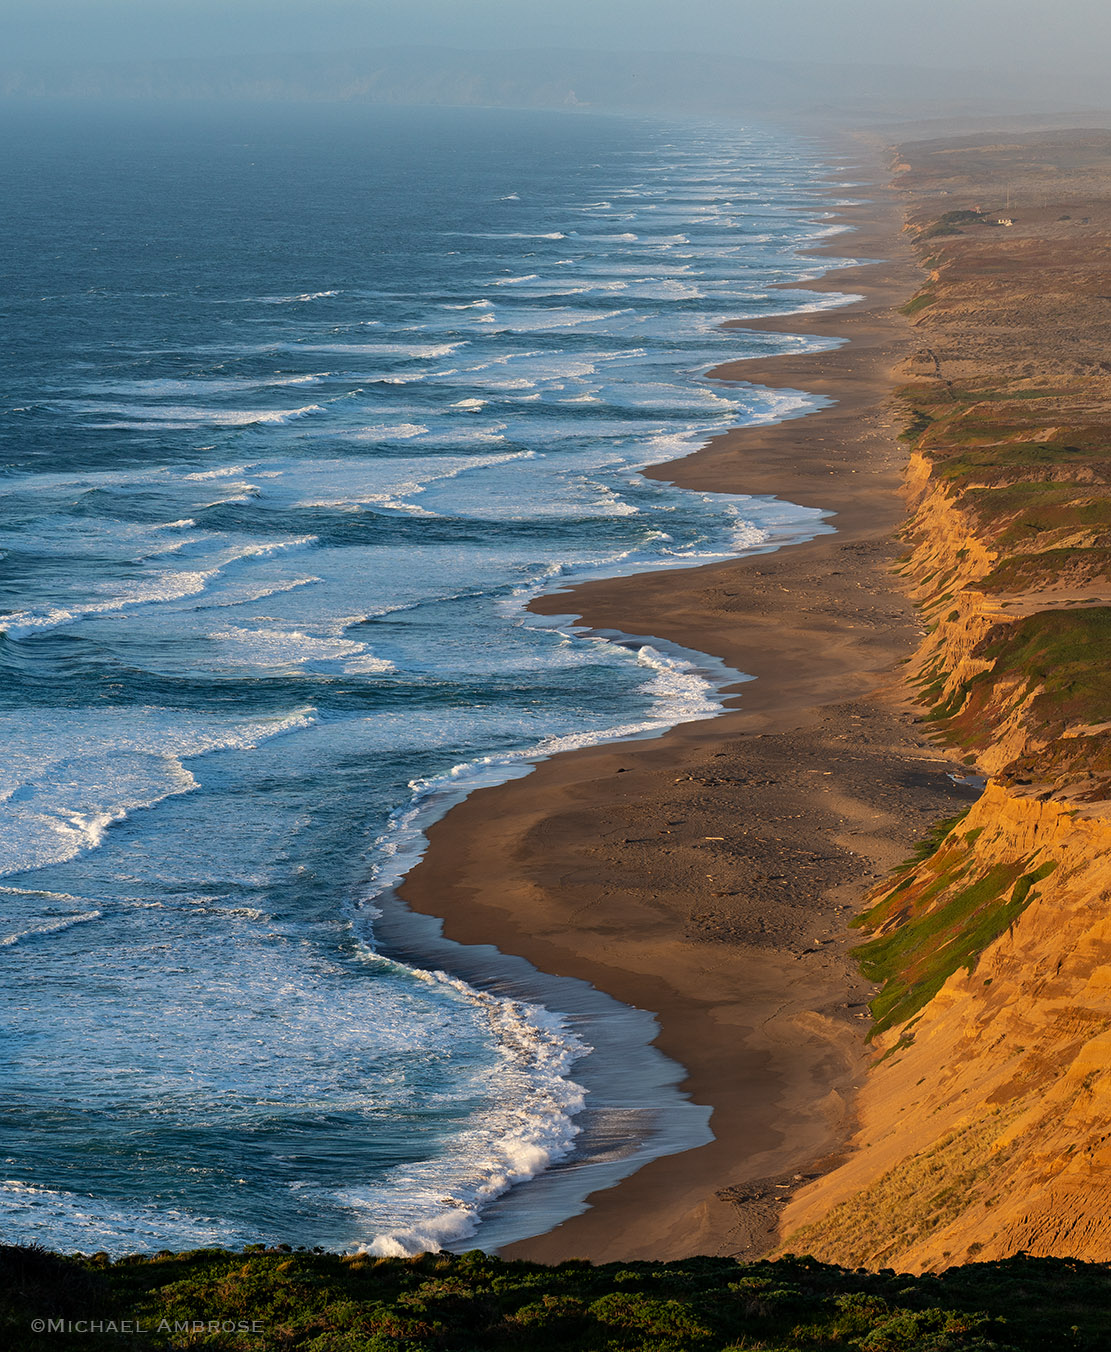 Like lace adorning a collar, the layers of waves, sand, and cliffs glisten in the evening sun a Point Reyes National Seashore in California.